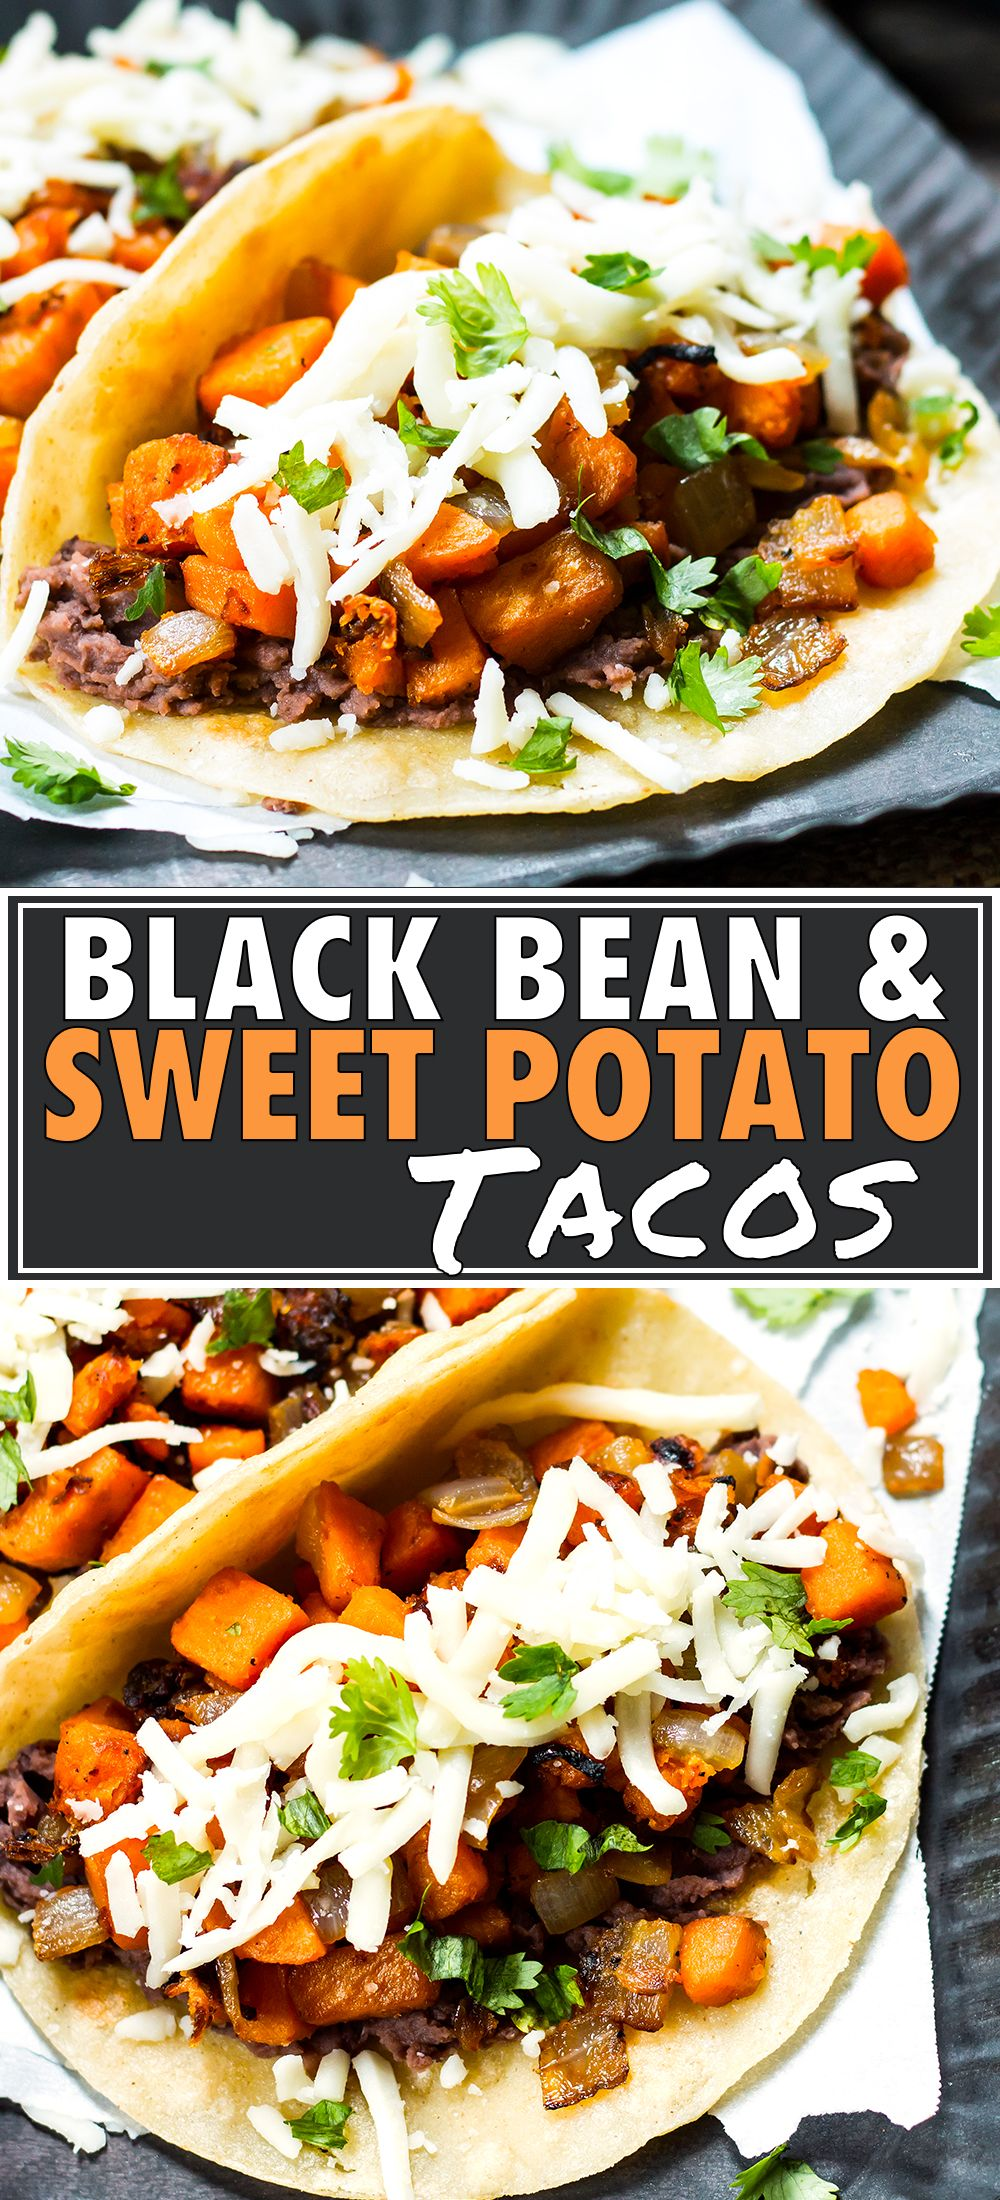 Black Bean & Sweet Potato Tacos images